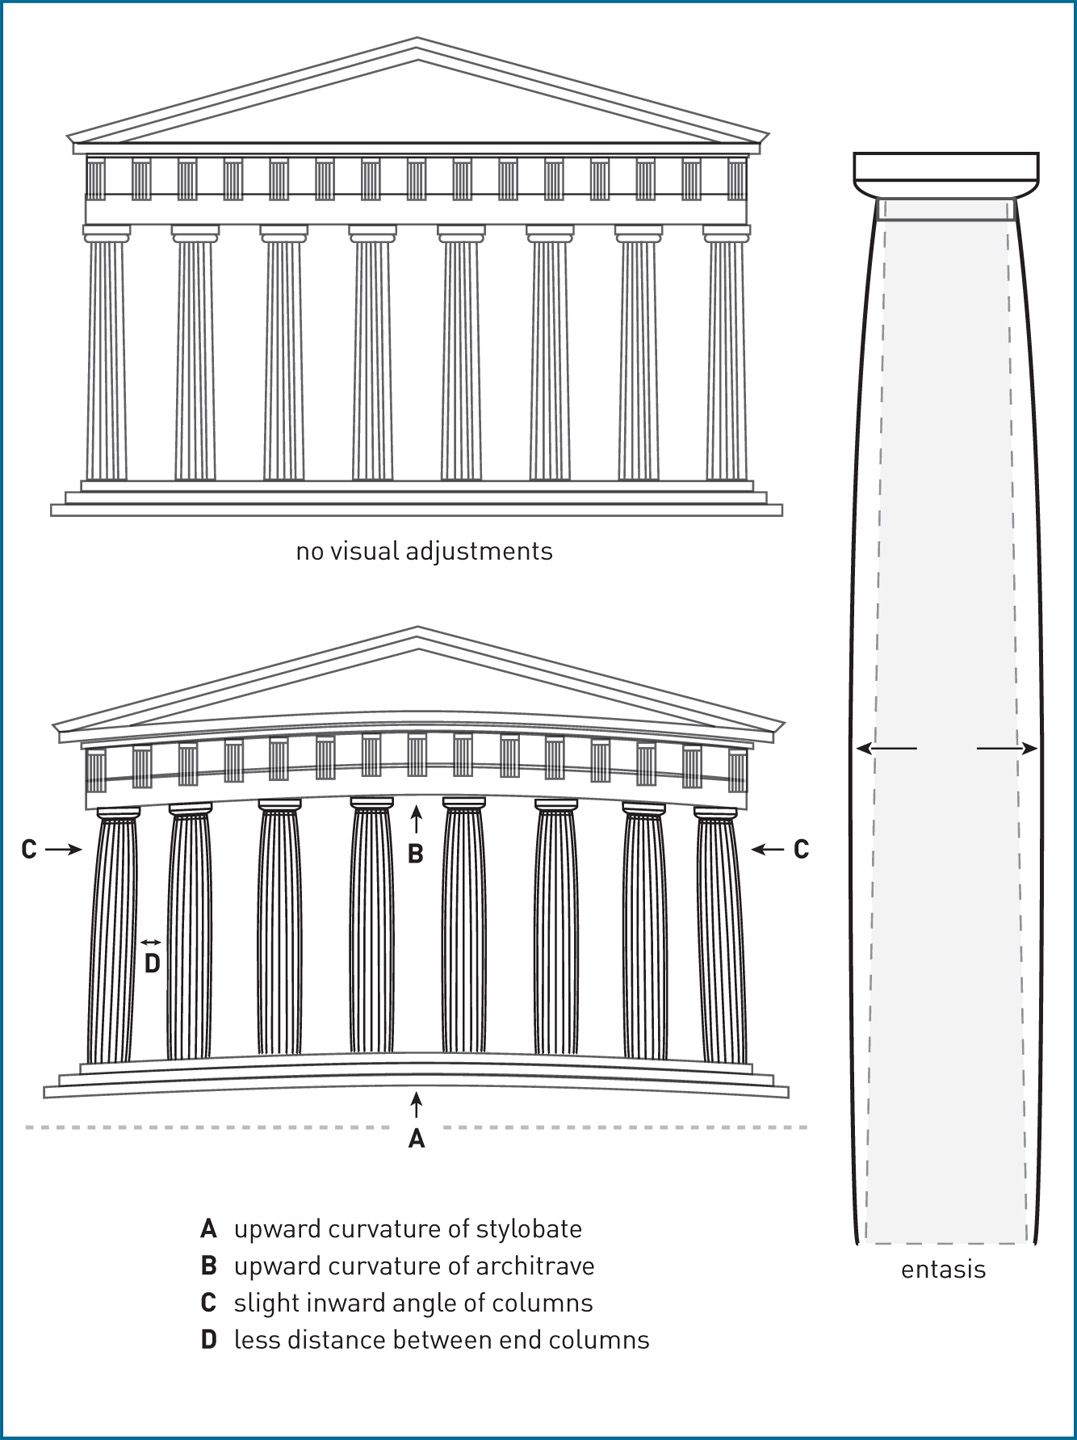 greek architecture diagram dvc subwoofer wiring 4 81bd showing the optical illusions utilized in